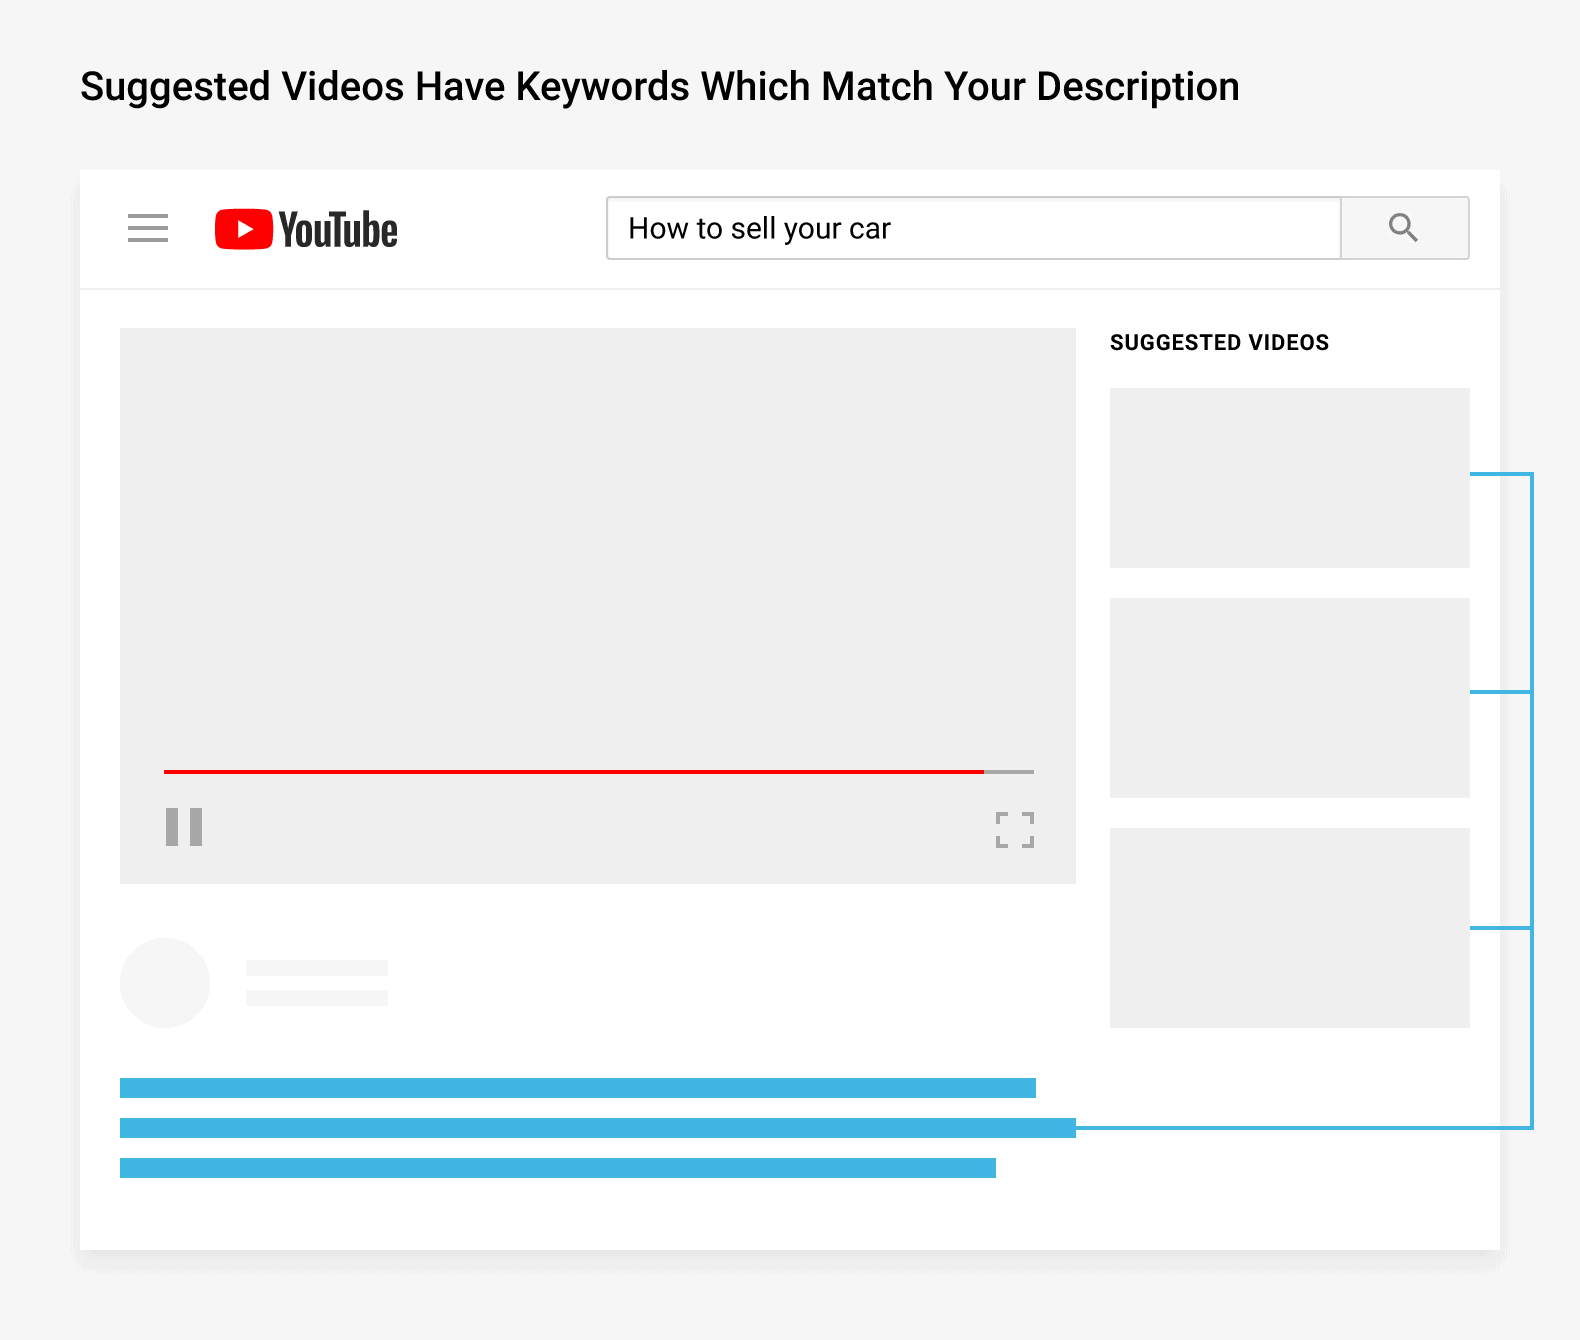 Suggested videos have keywords which match your description